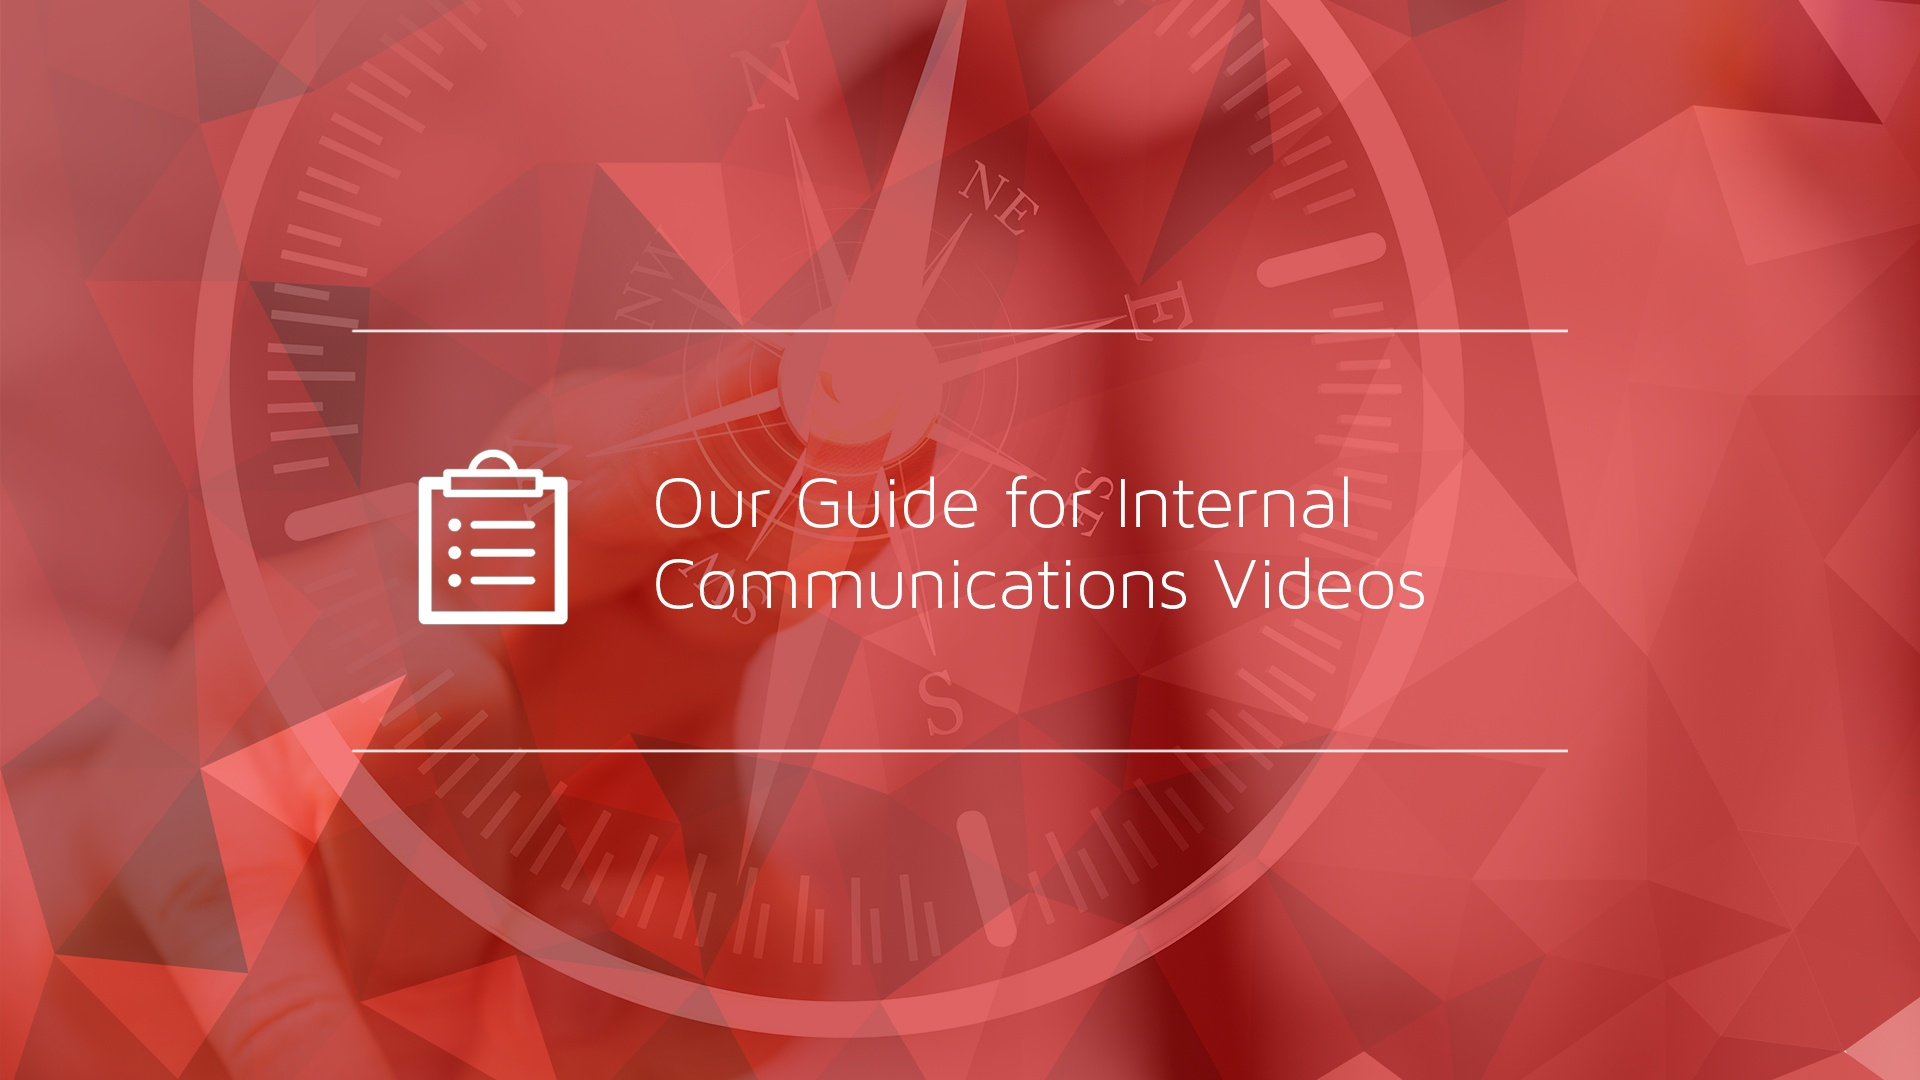 Our Guide for Internal Communications Videos